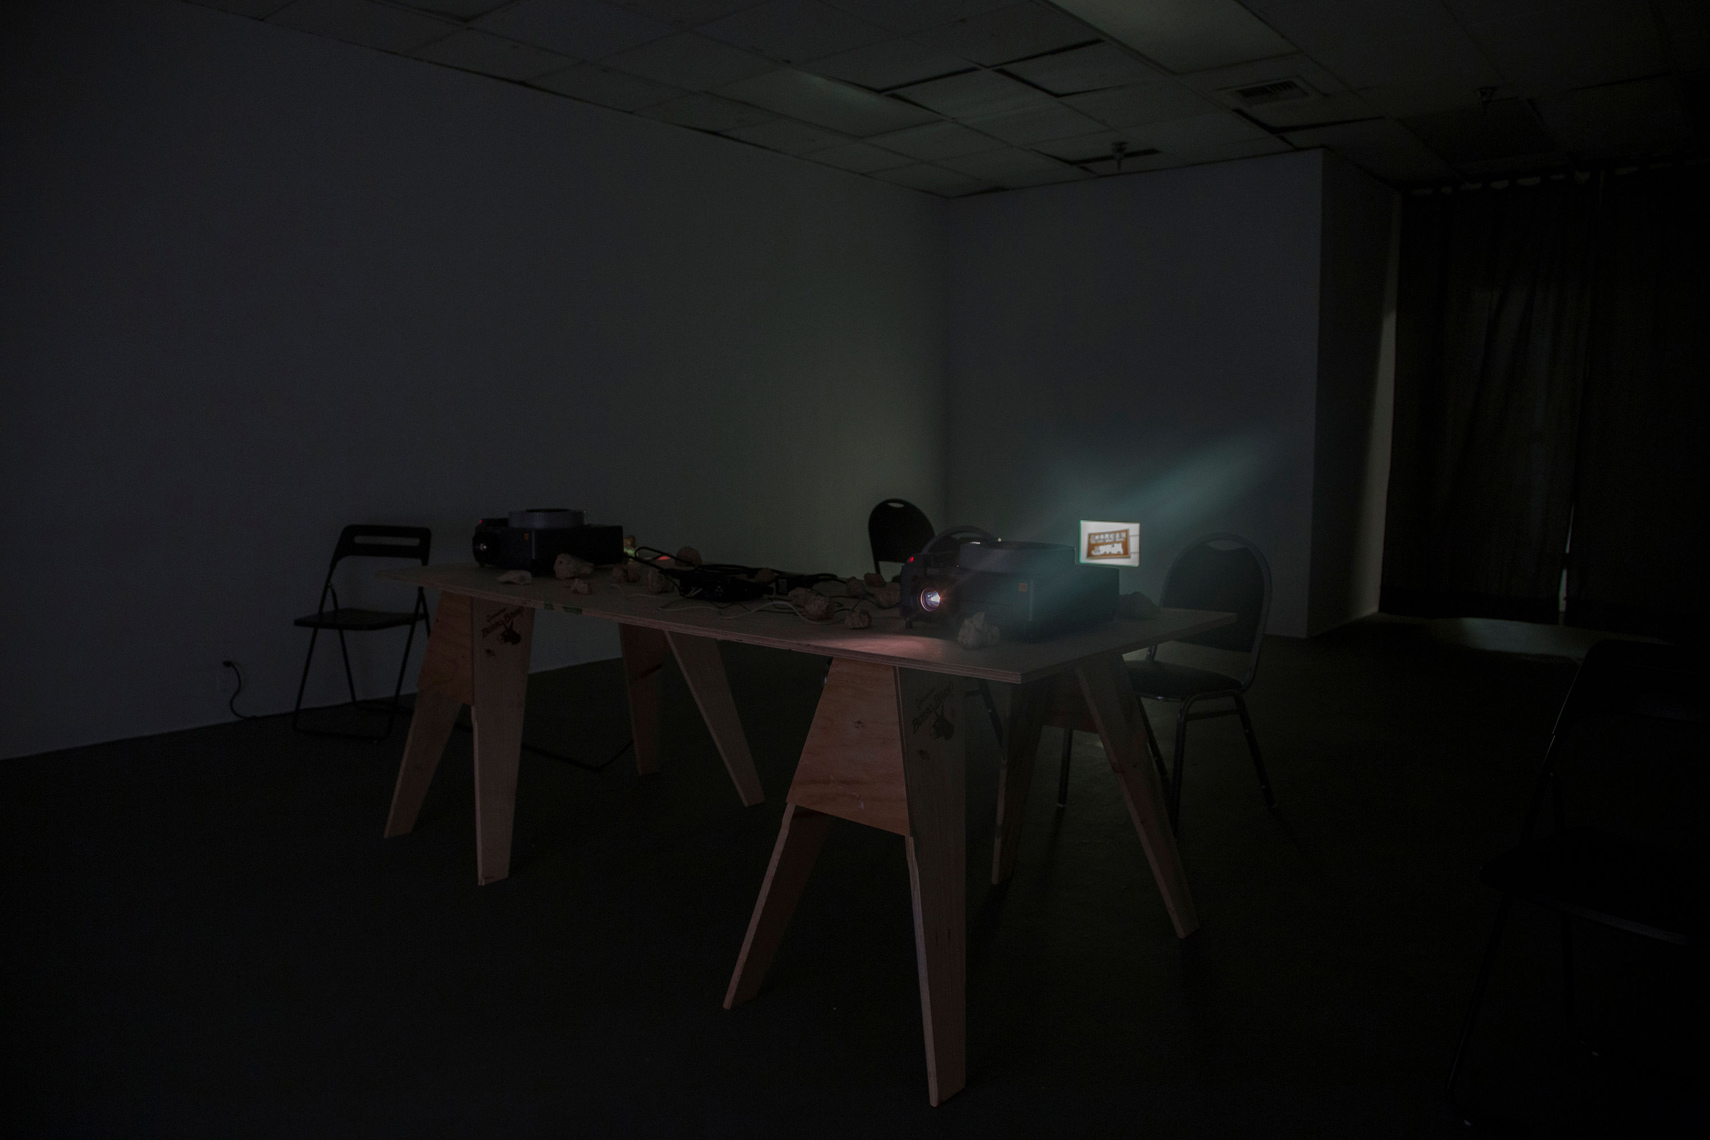 When Ta-tung-tan disappears, Pai-tung-tzu reappears, Installation view, Gallery A402, CalArts, April 2–9, 2016